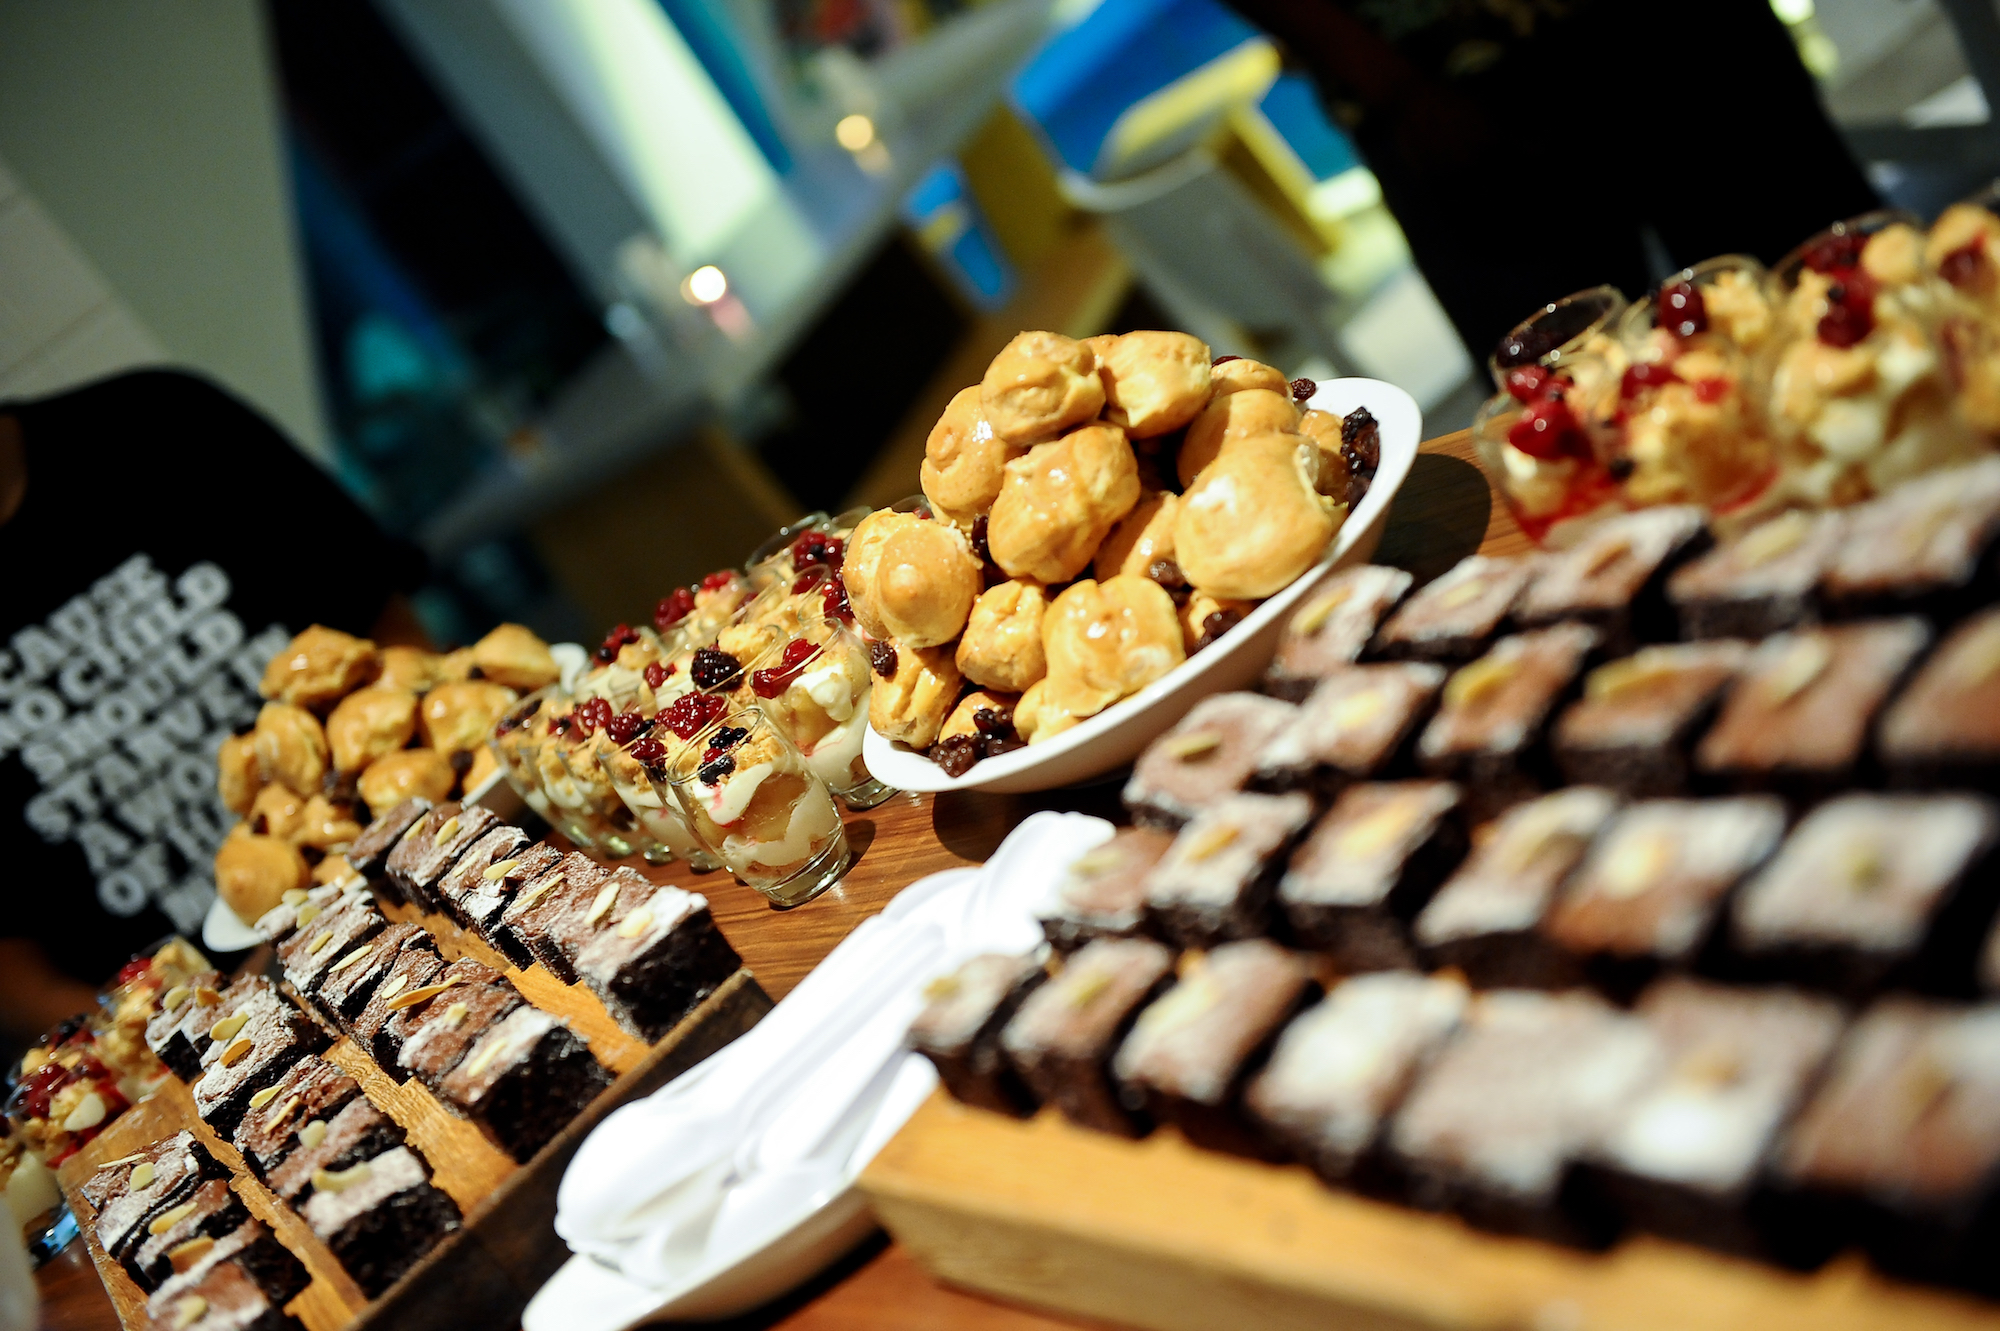 Close up of dessert table with pastries